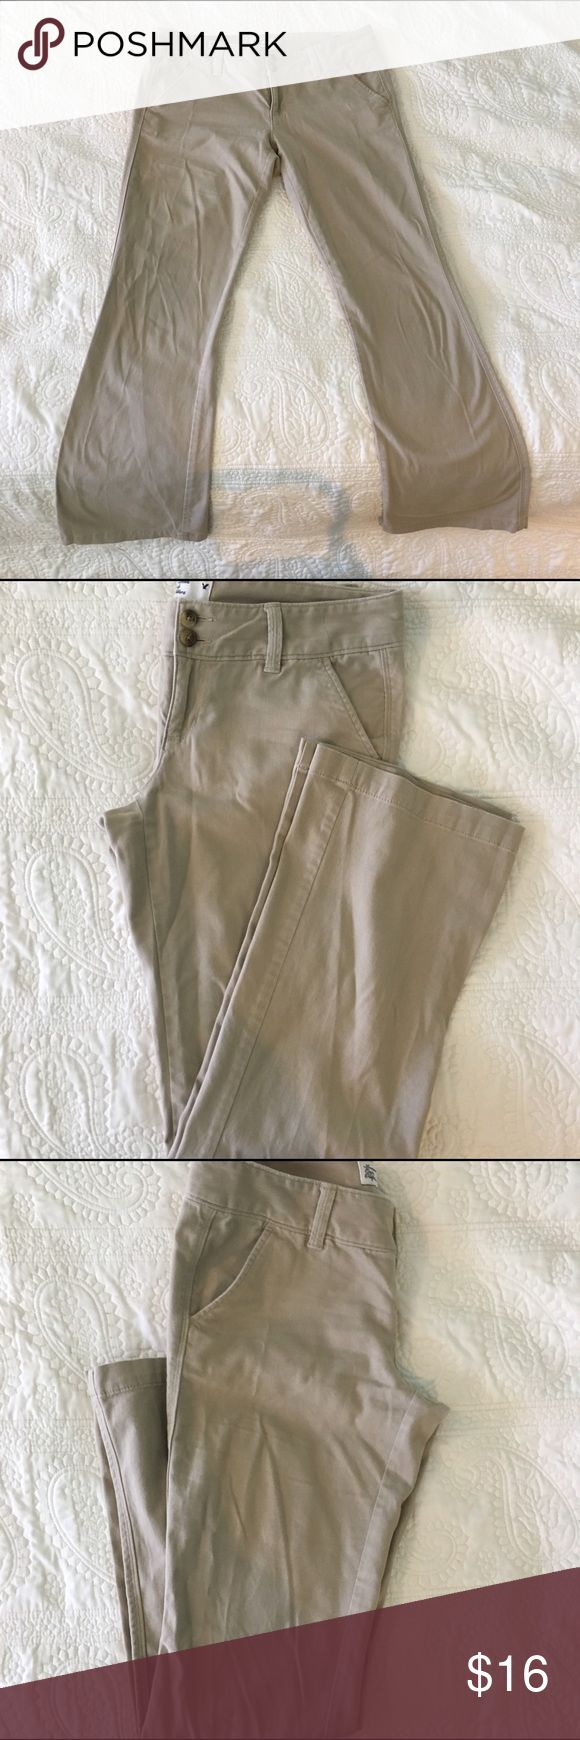 American Eagle Outfitters khaki pants Amazingly soft for a chino pant, EUC, no rips, stains, or tears American Eagle Outfitters Pants Trousers